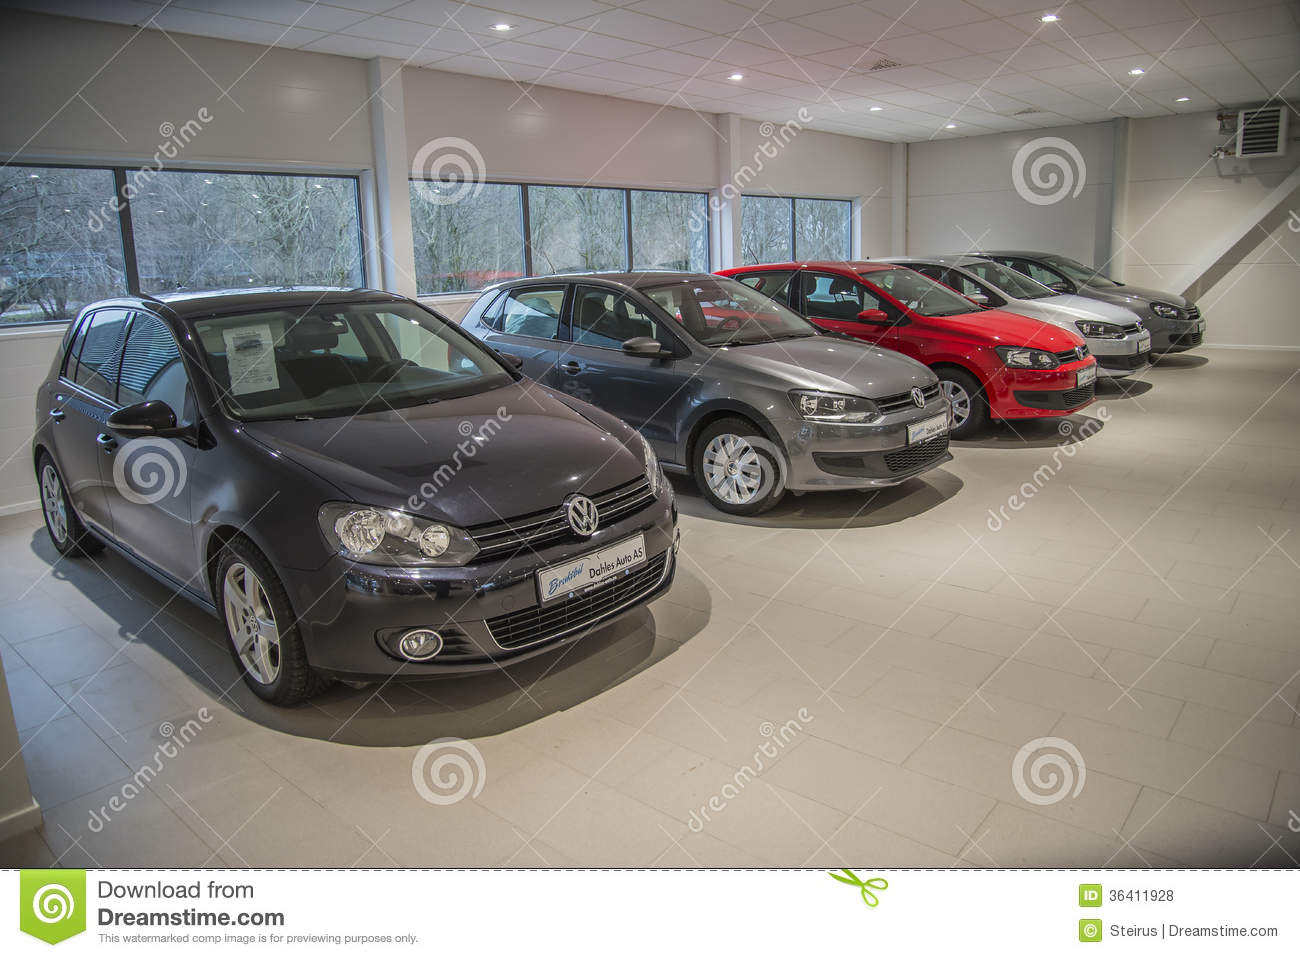 VW used cars for sale editorial stock photo. Image of show - 36411928